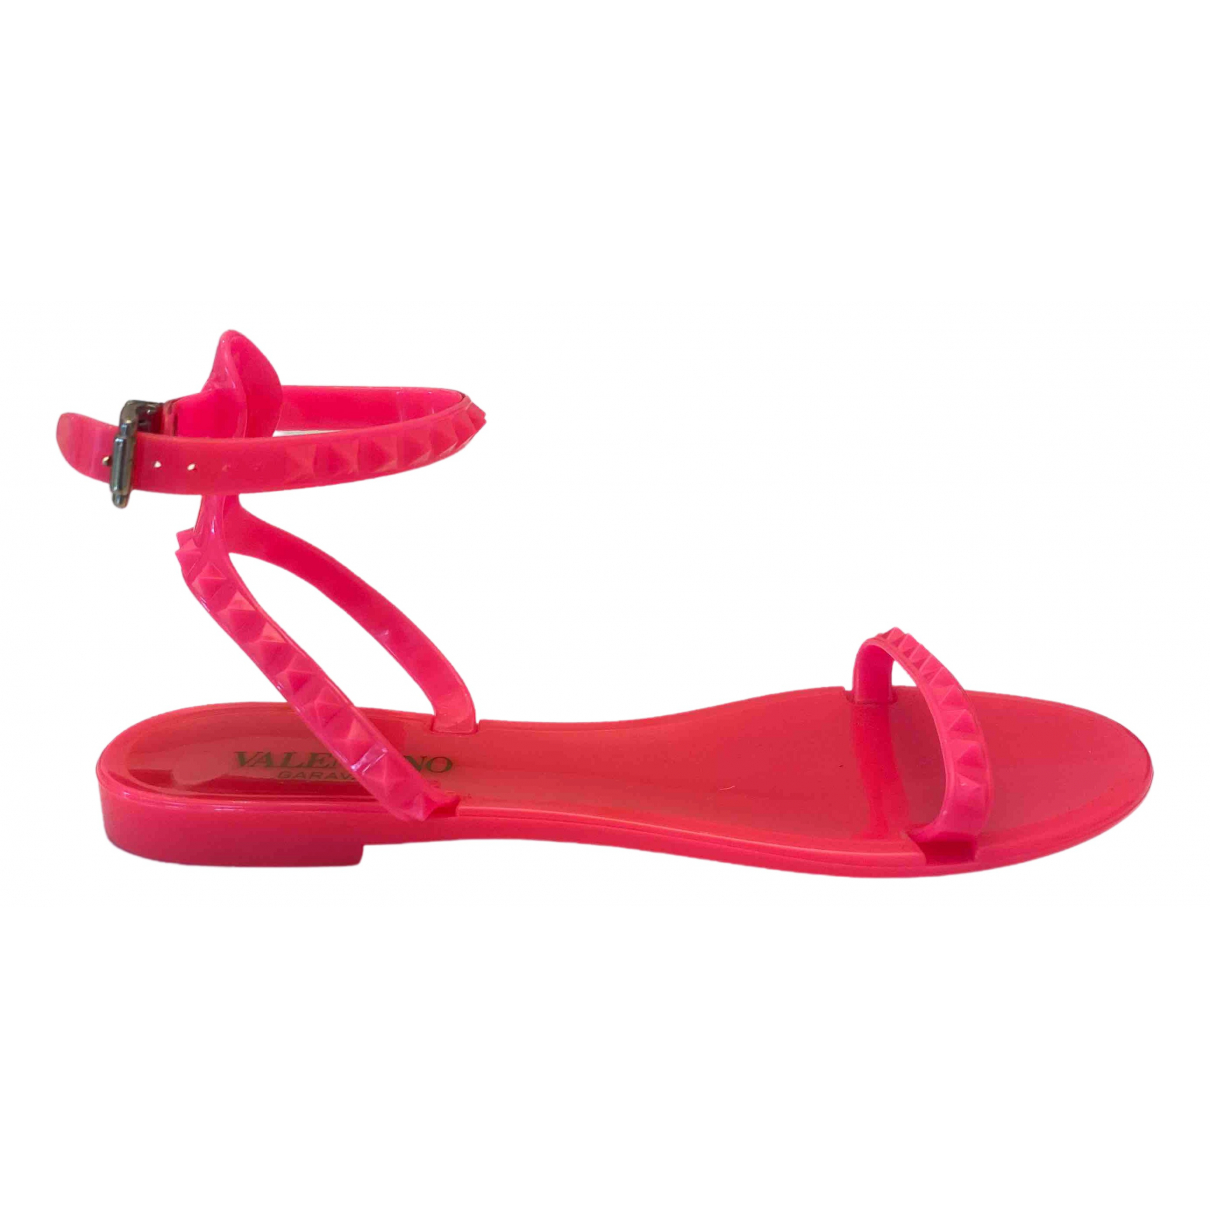 Valentino Garavani N Pink Sandals for Women 38 EU